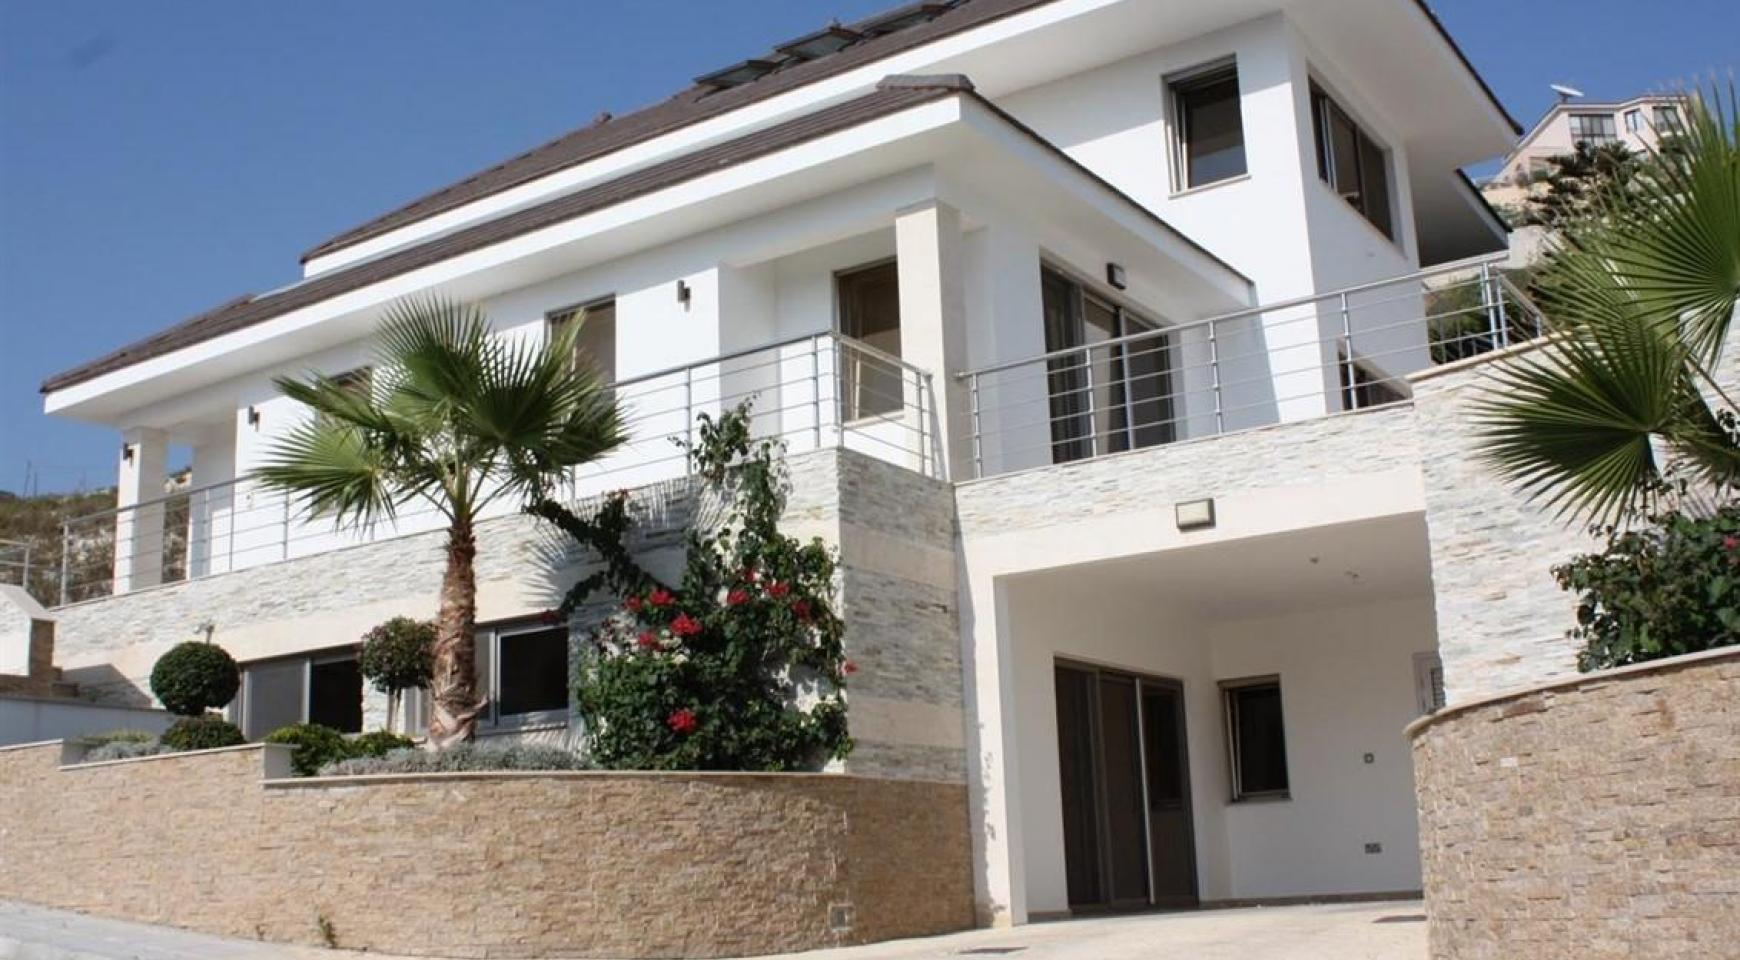 New Luxurious 5 Bedroom Villa with Stunning Views in Agios Tychonas - 2